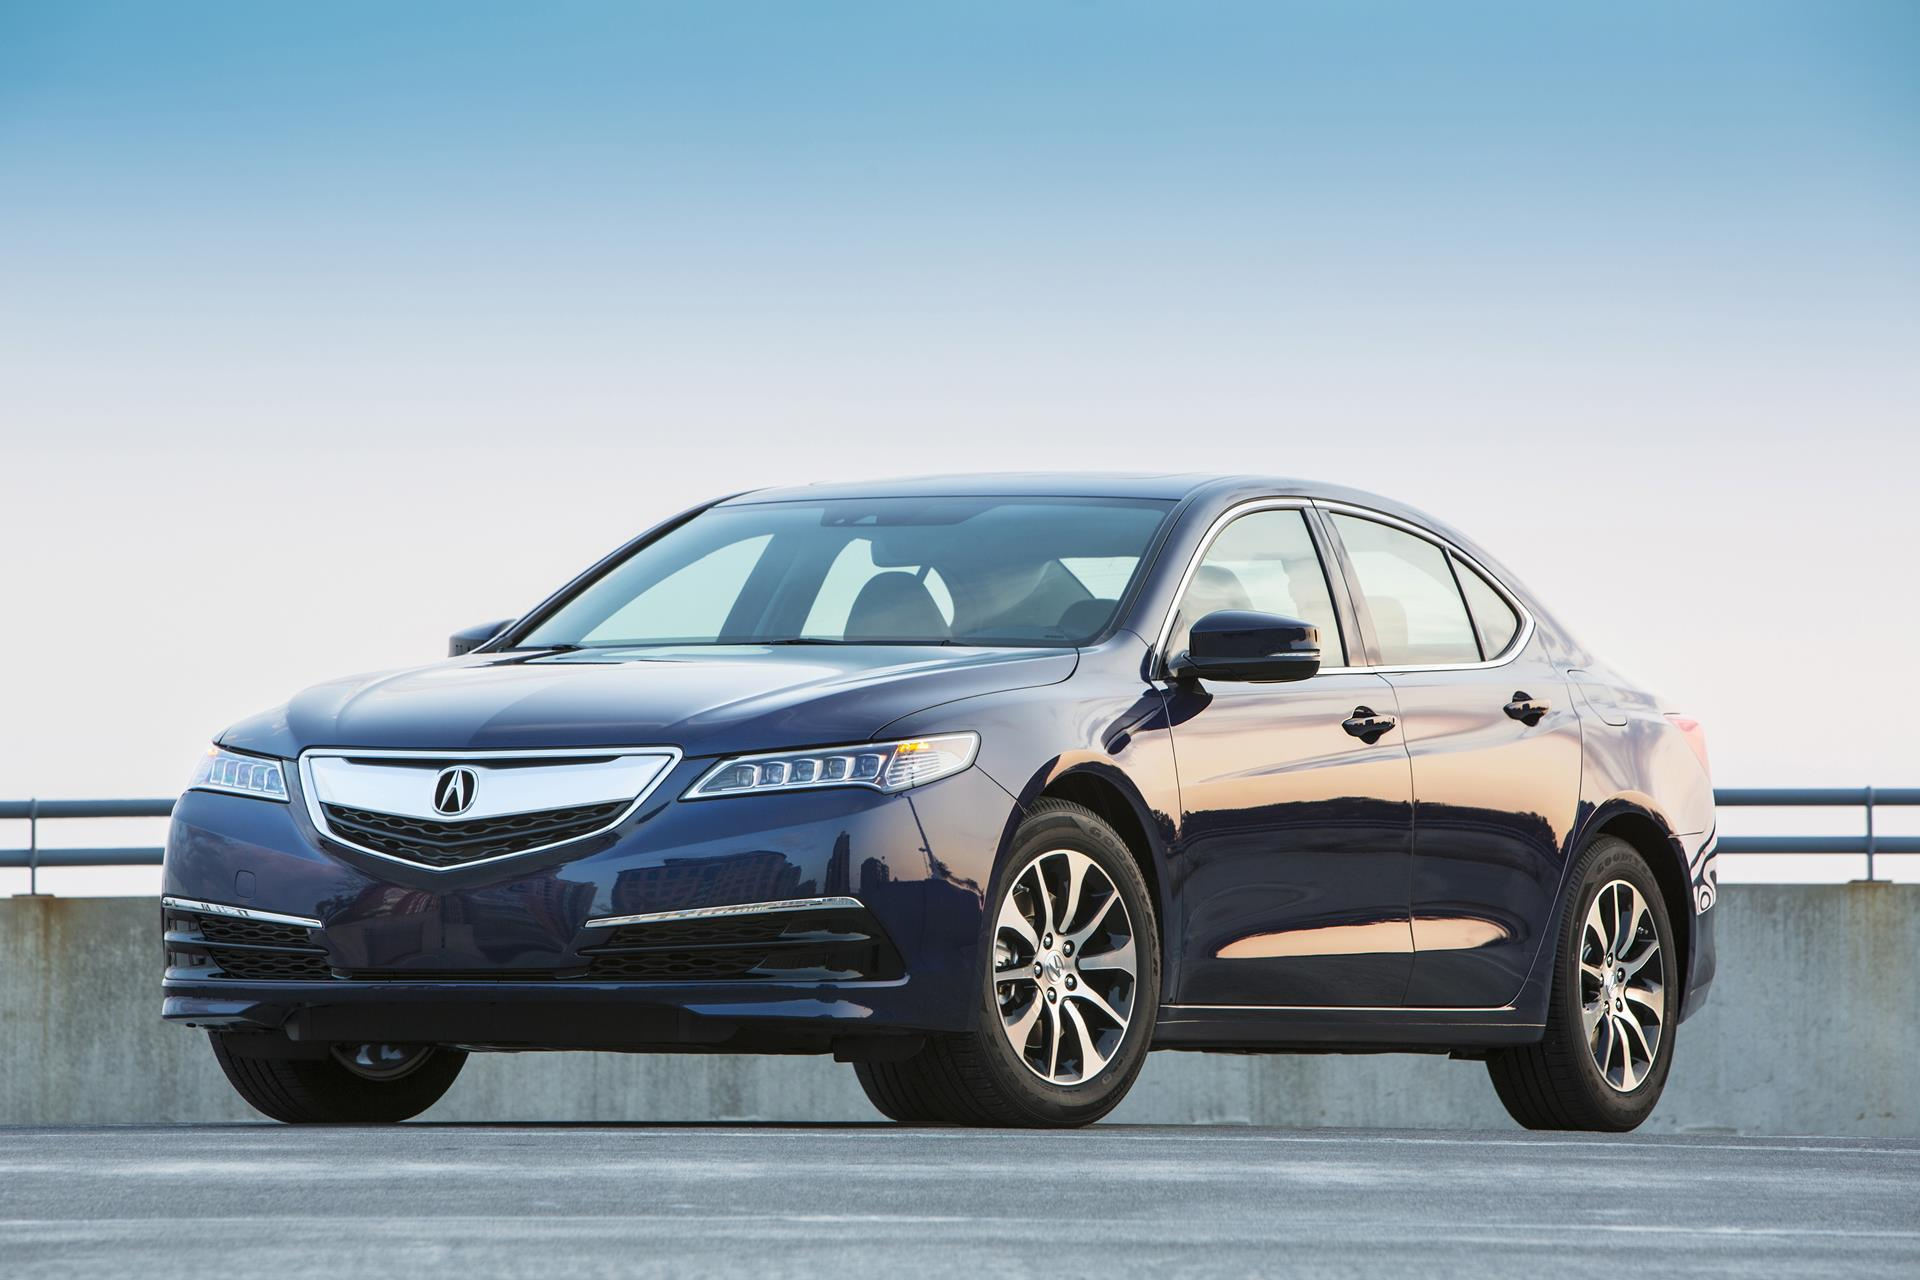 2017 acura tlx. Black Bedroom Furniture Sets. Home Design Ideas